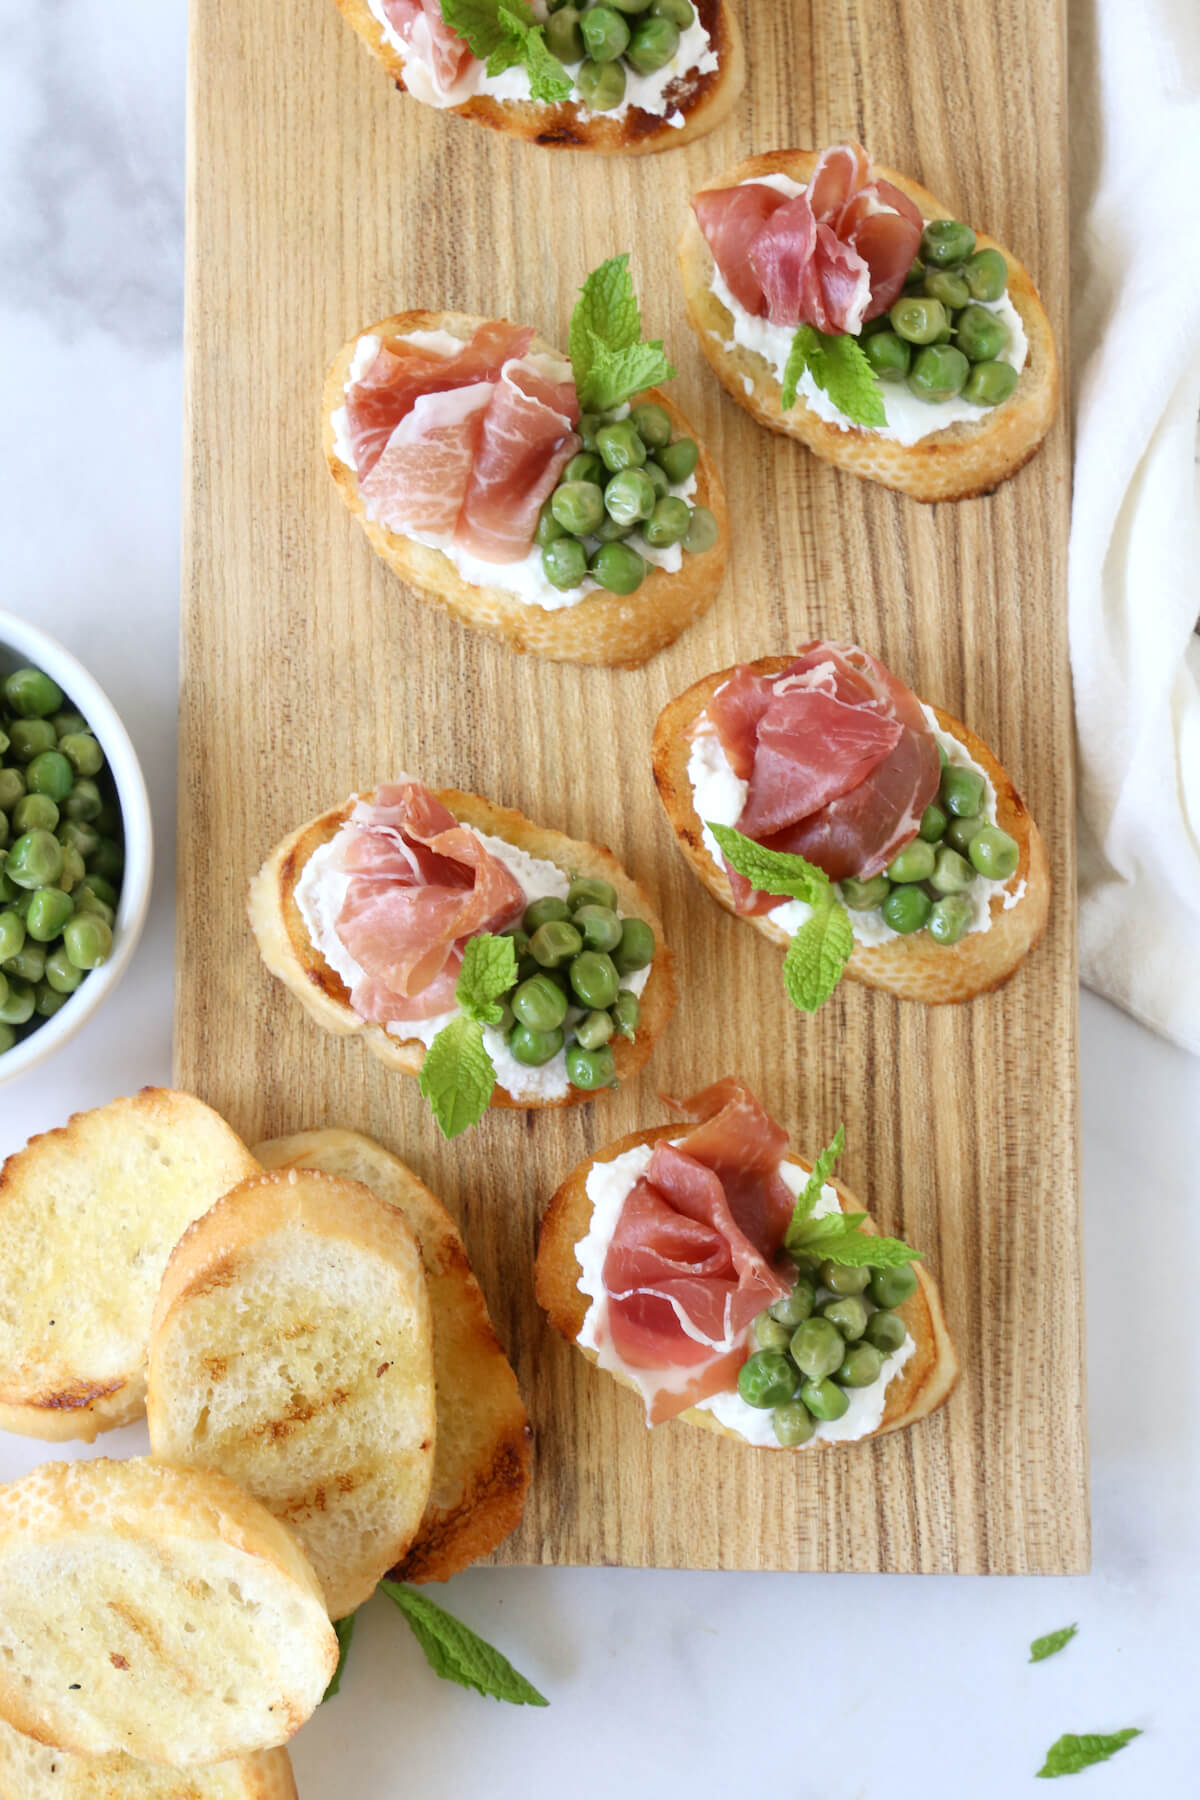 A wood board topped with toasted bread, peas and prosciutto slices.